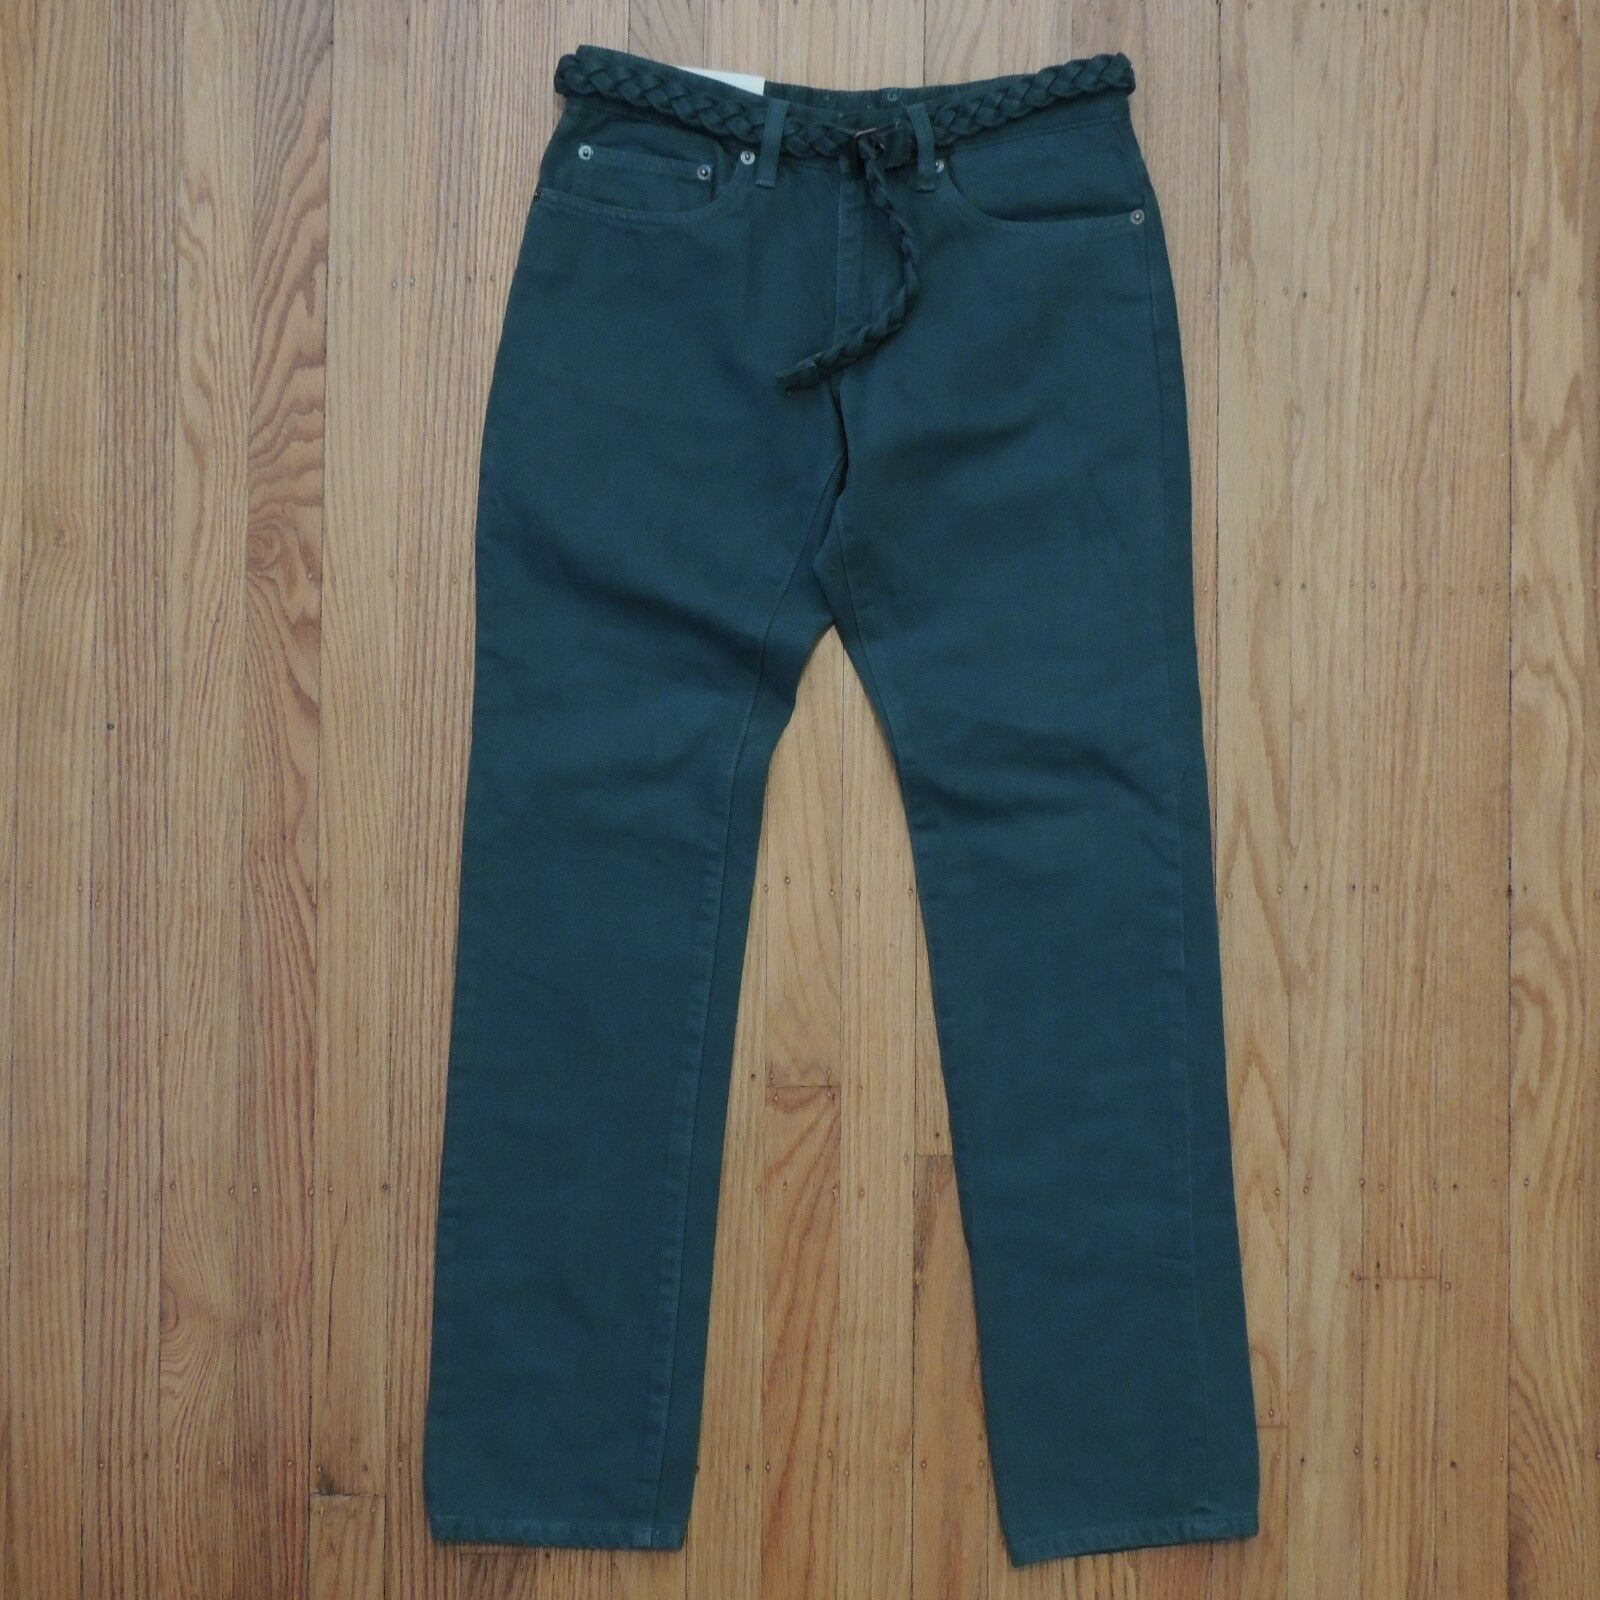 Opening Ceremony Skinny Fit Jeans Womens Green Braided Belg Size 32 NEW